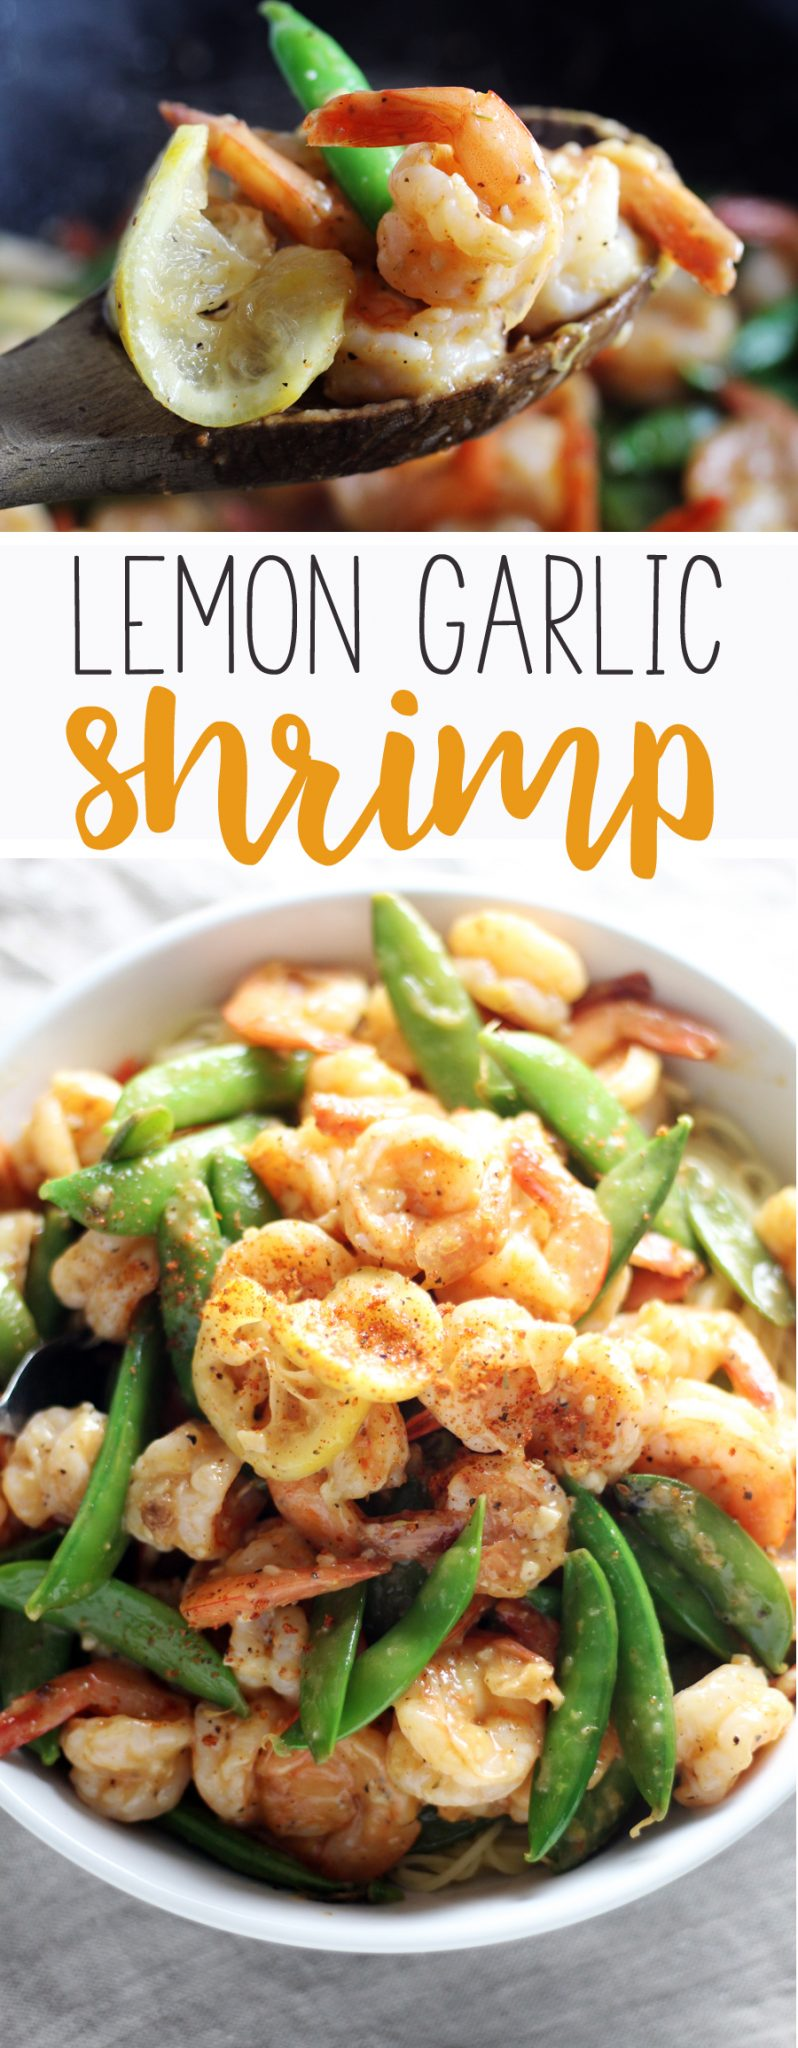 A fast + fabulous recipe for Lemon Garlic Shrimp. The light and zesty lemon garlic sauce clings to every bite for an amazing meal.